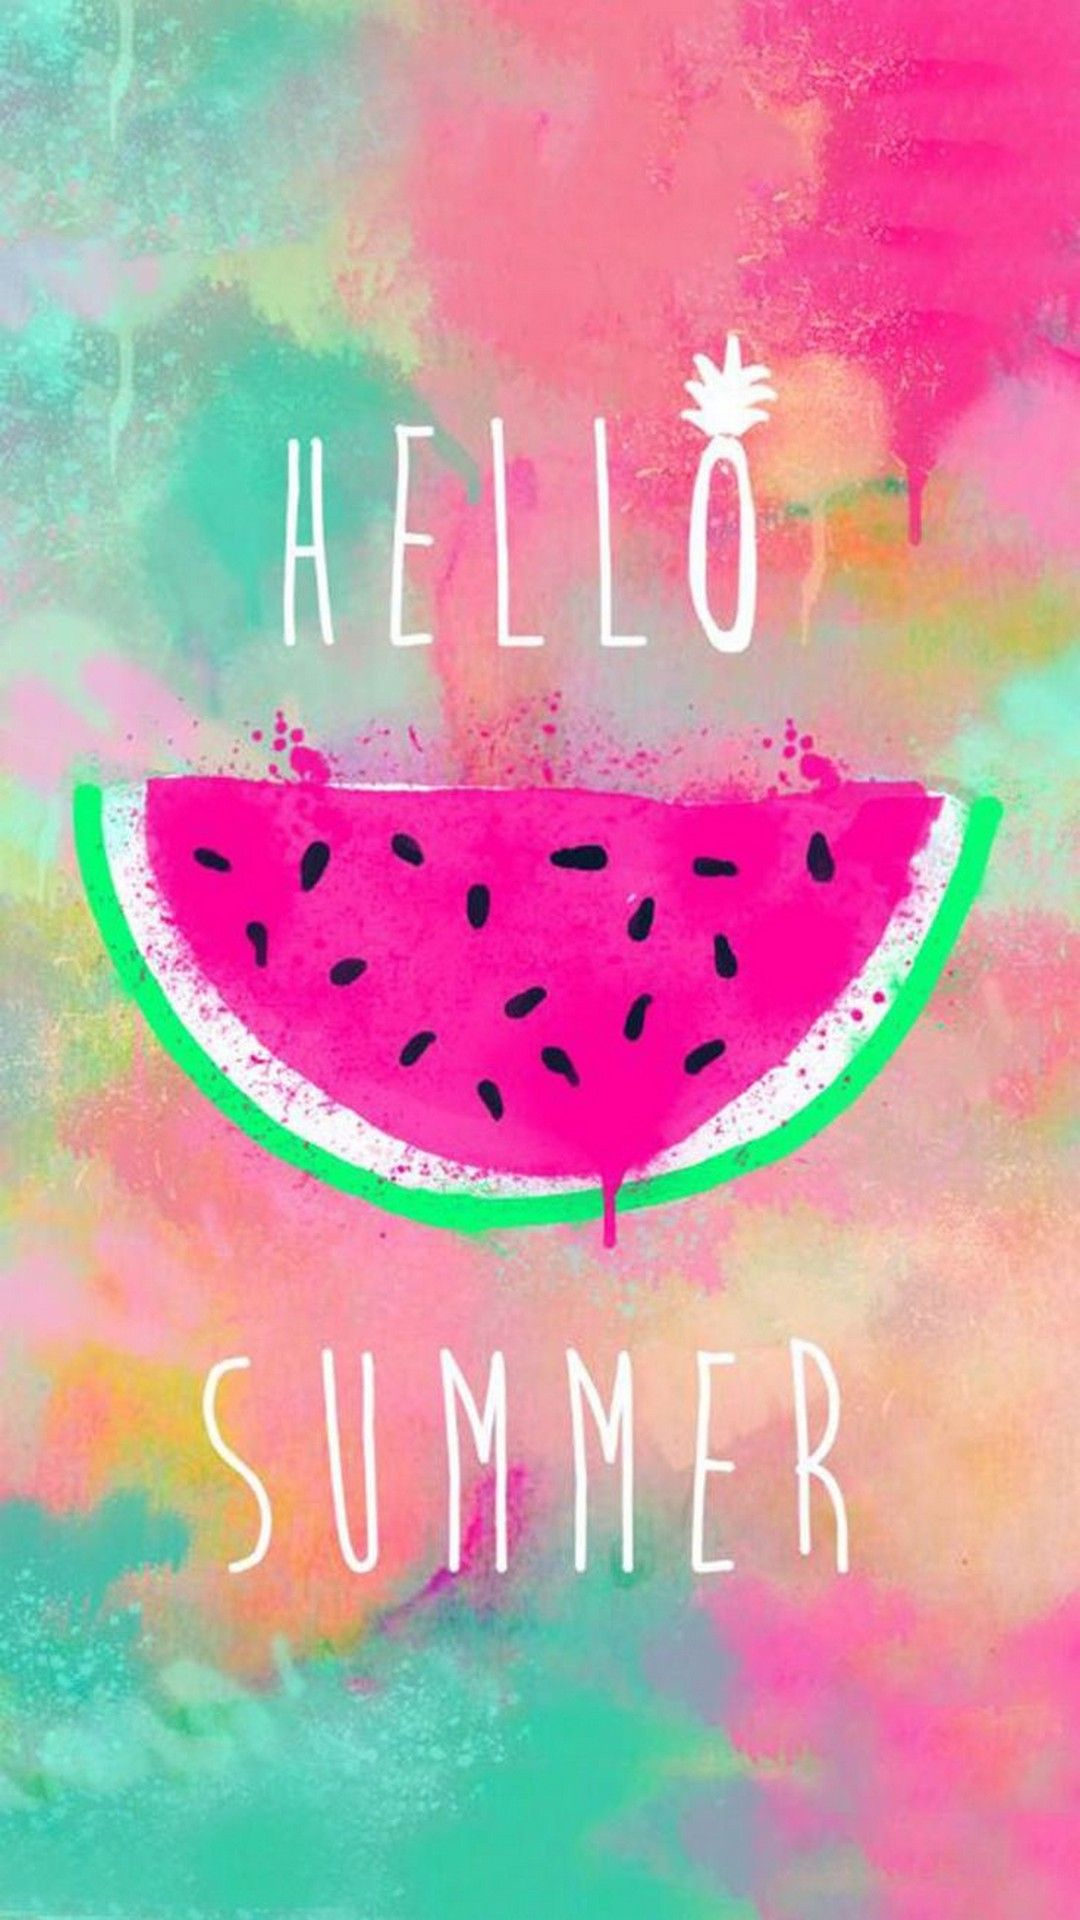 Summer Wallpaper Images For Android